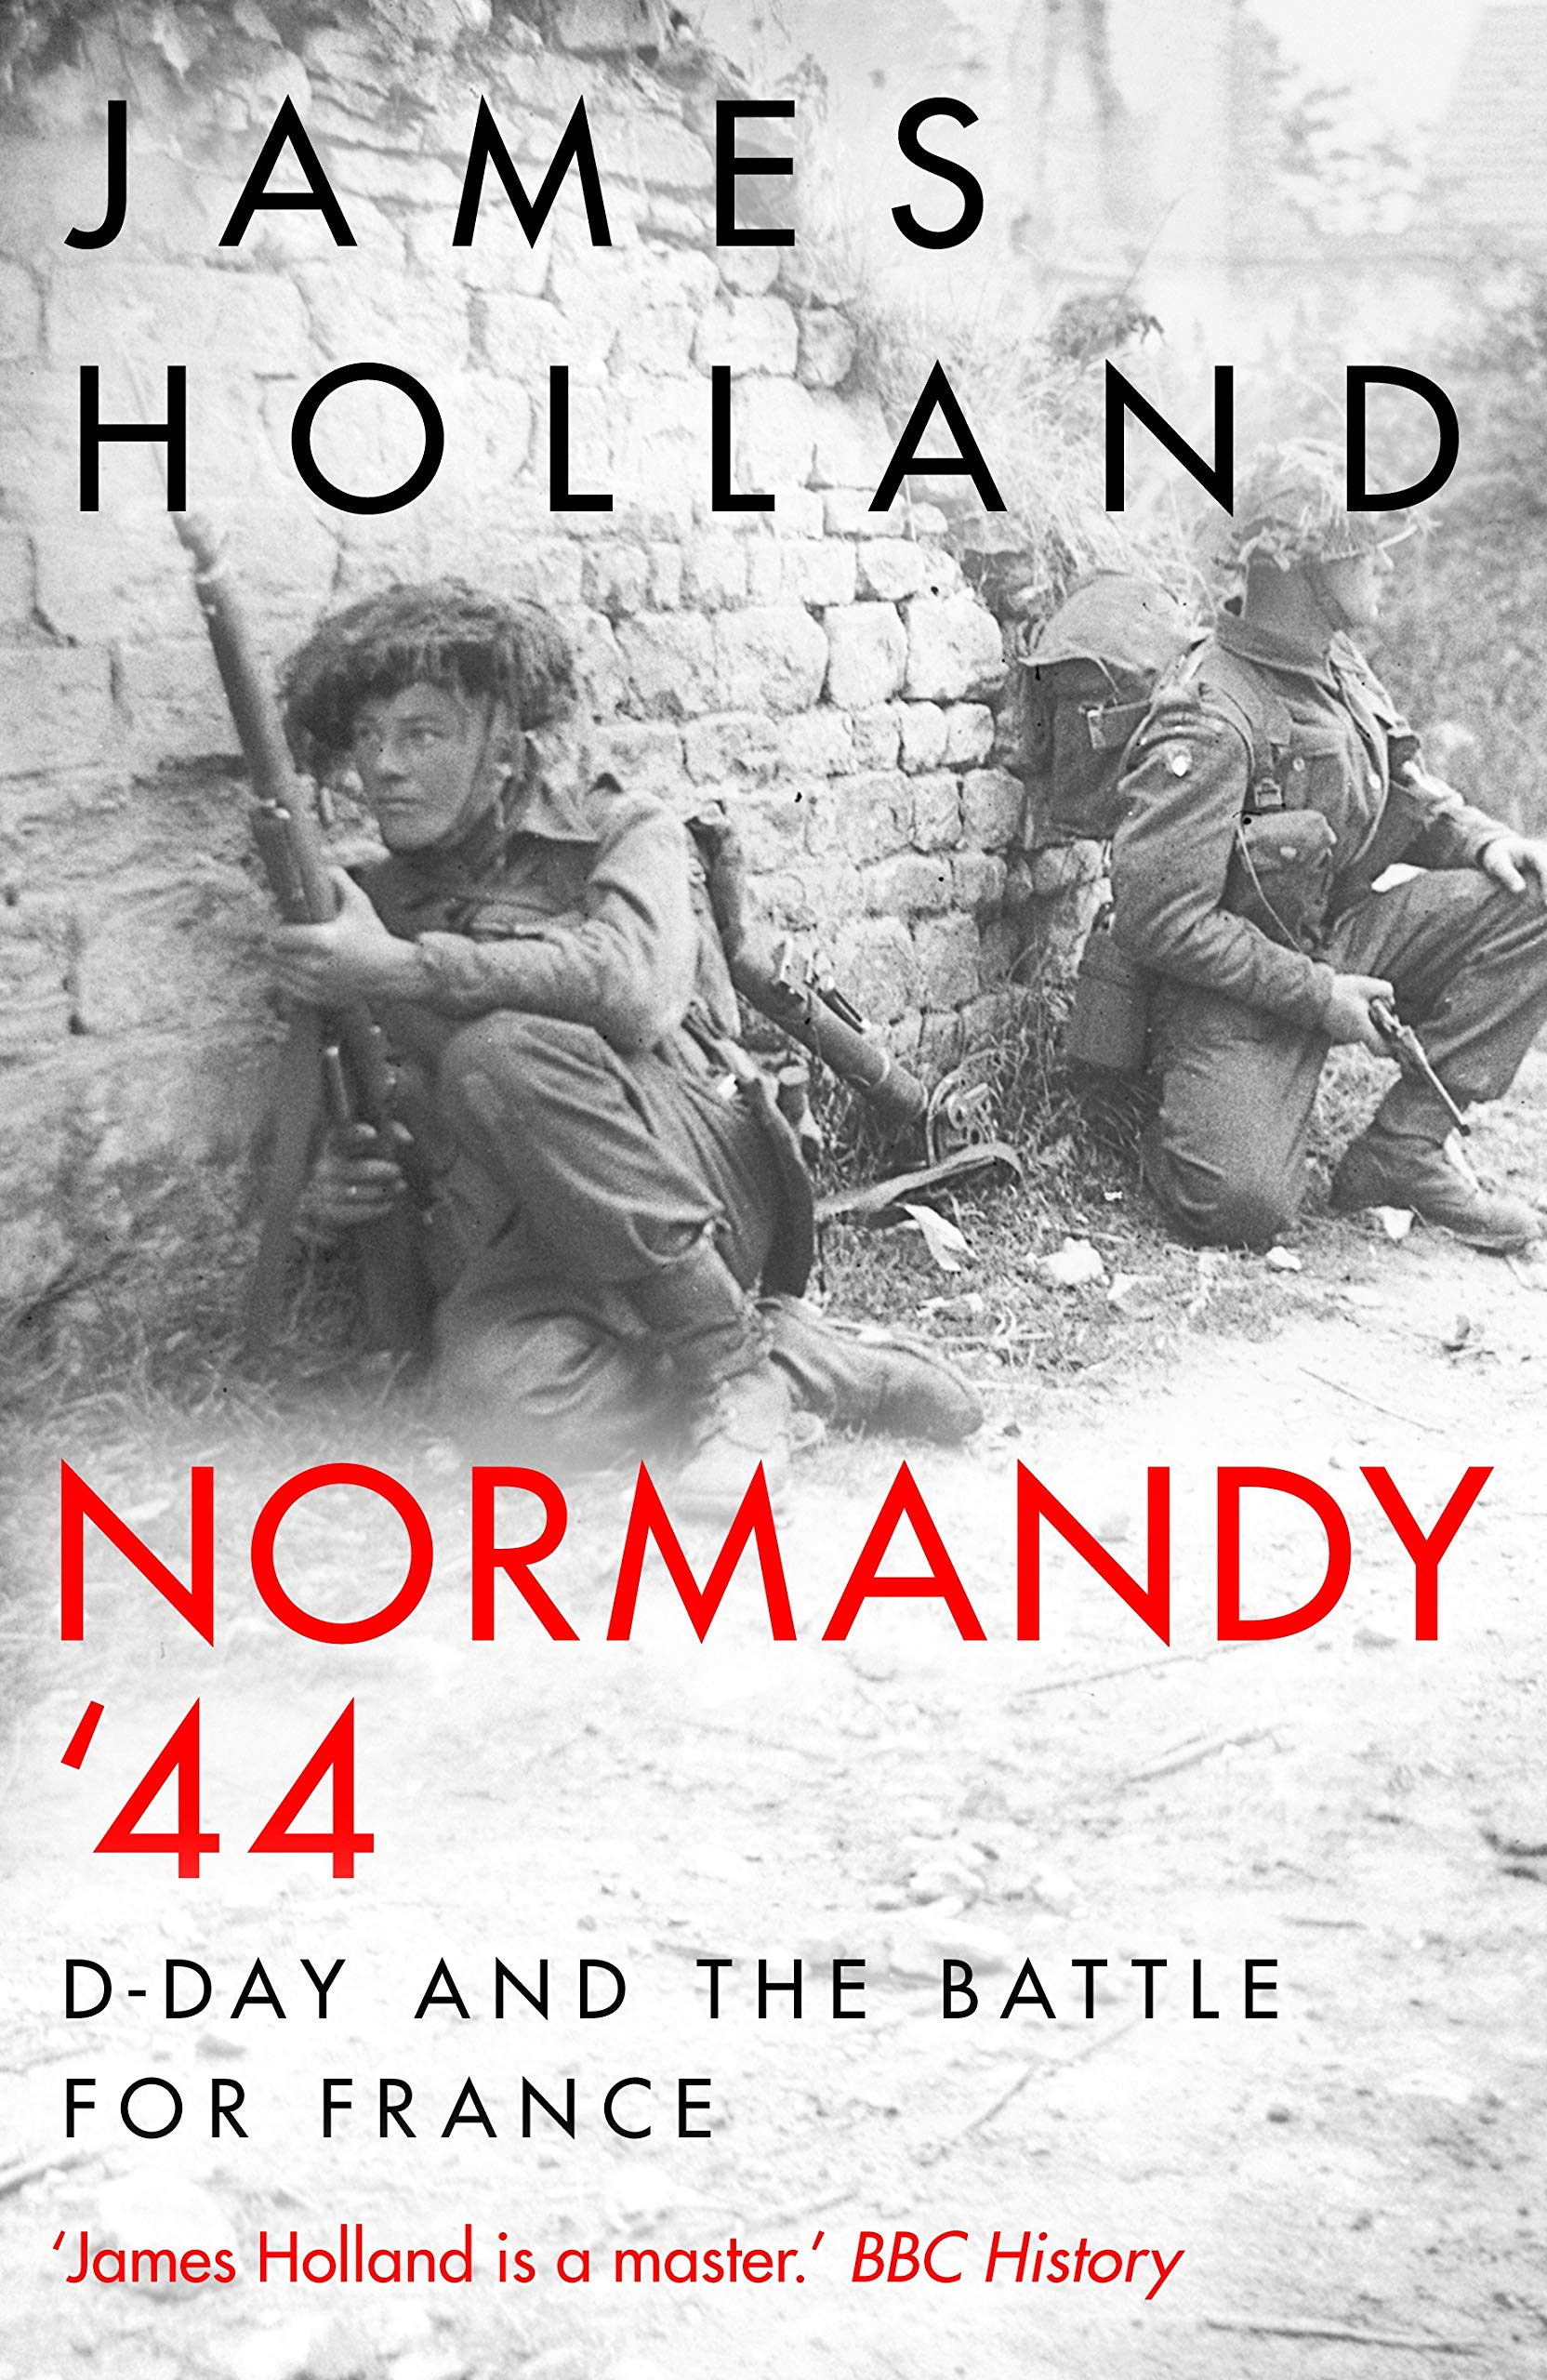 normandy cover.jpg